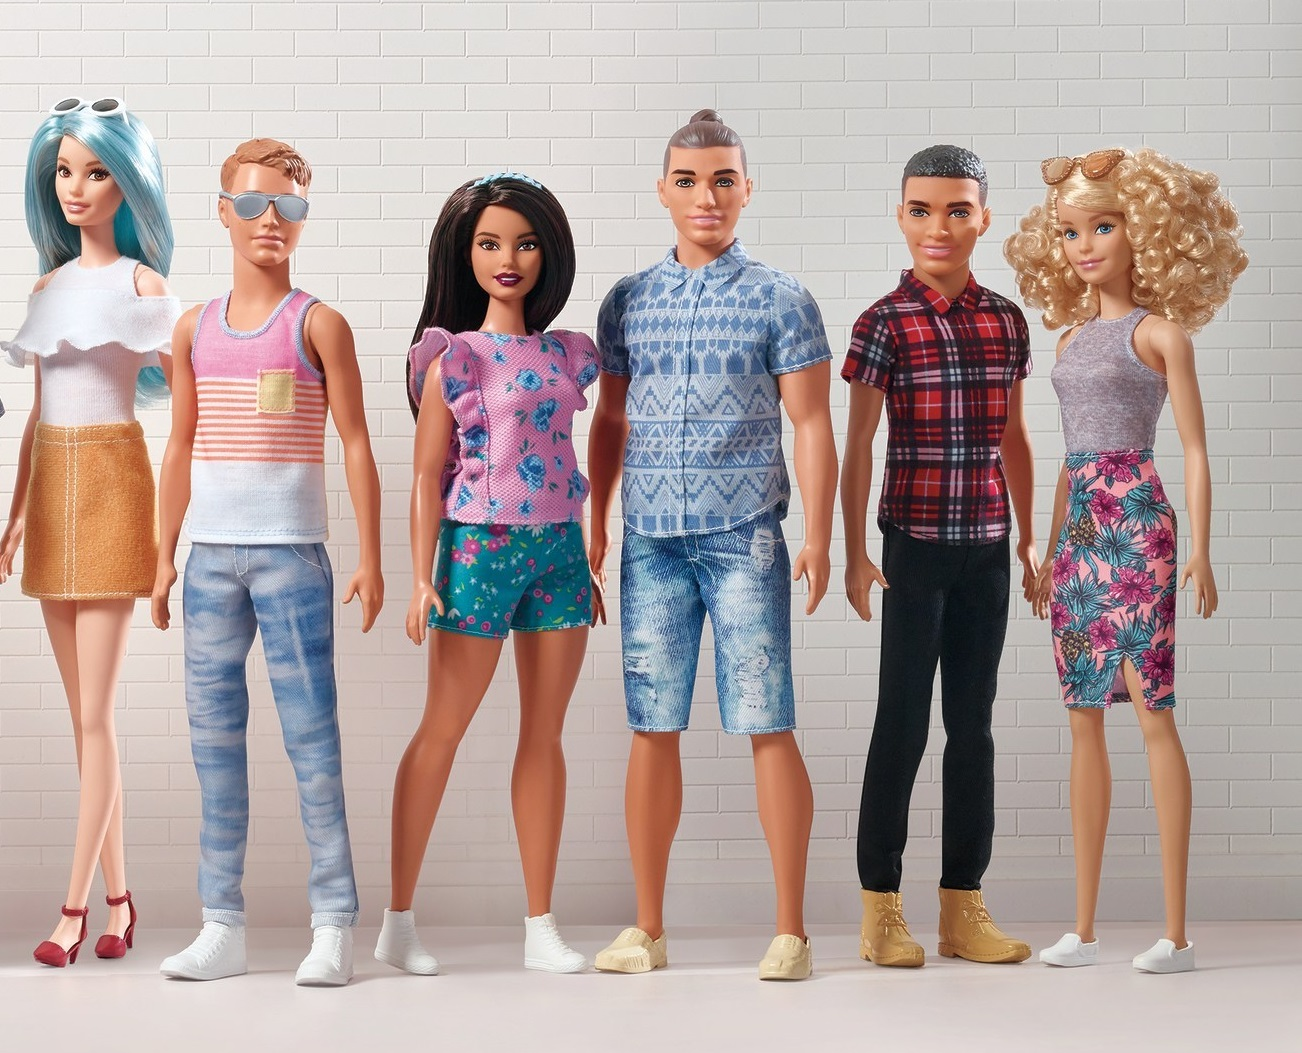 Barbie, fashionista line